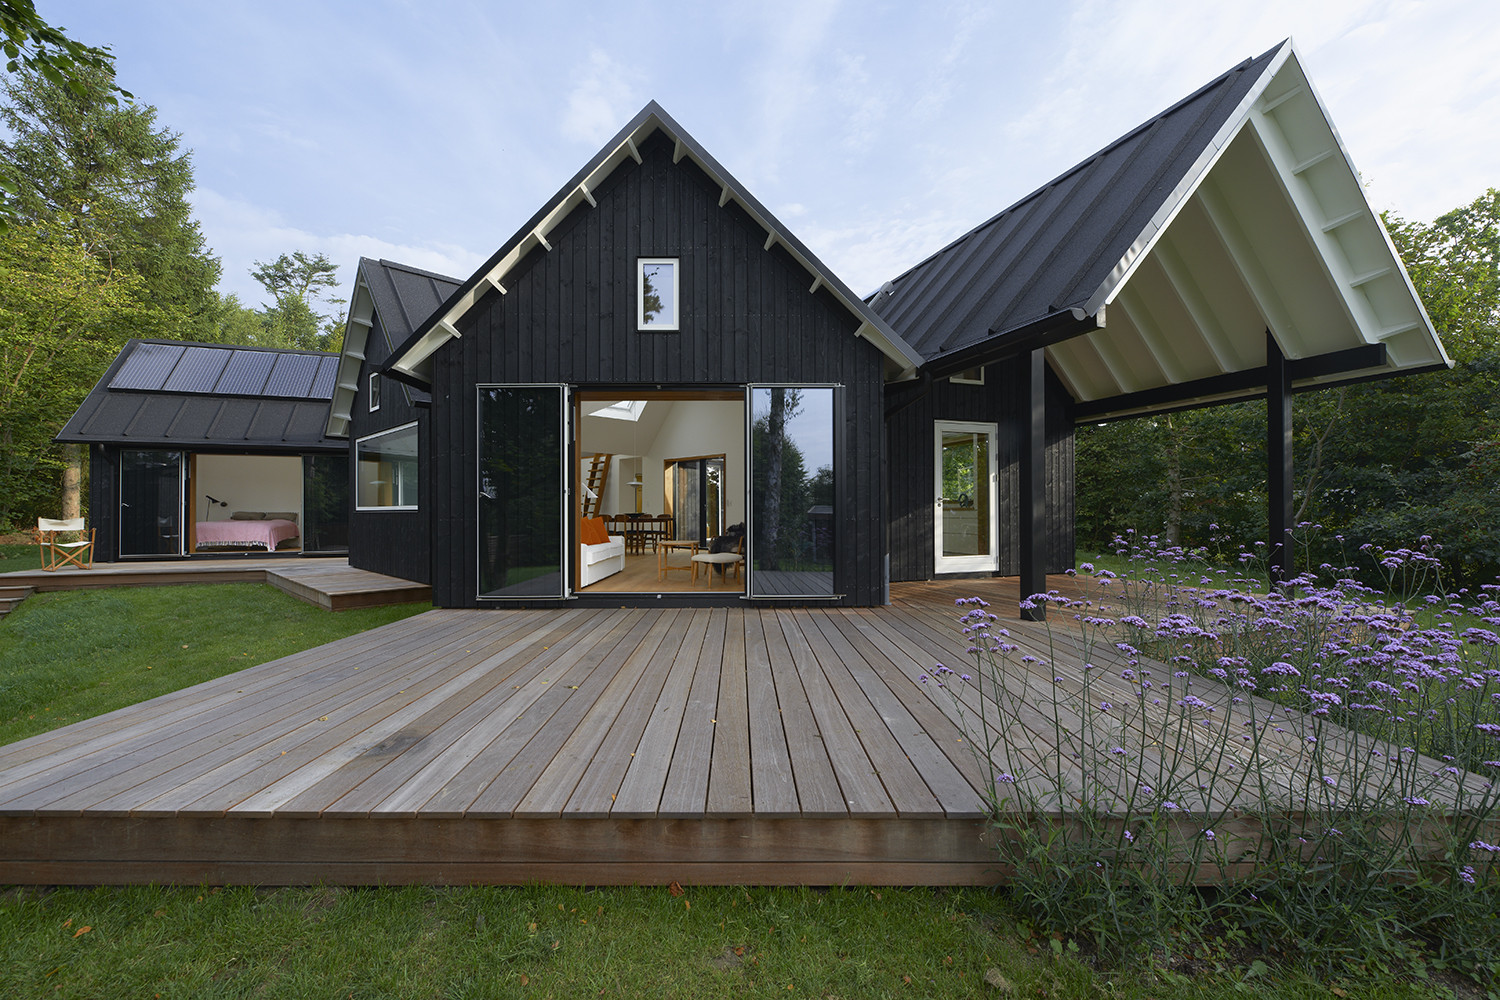 Danish Summer House / Powerhouse Company | ArchDaily